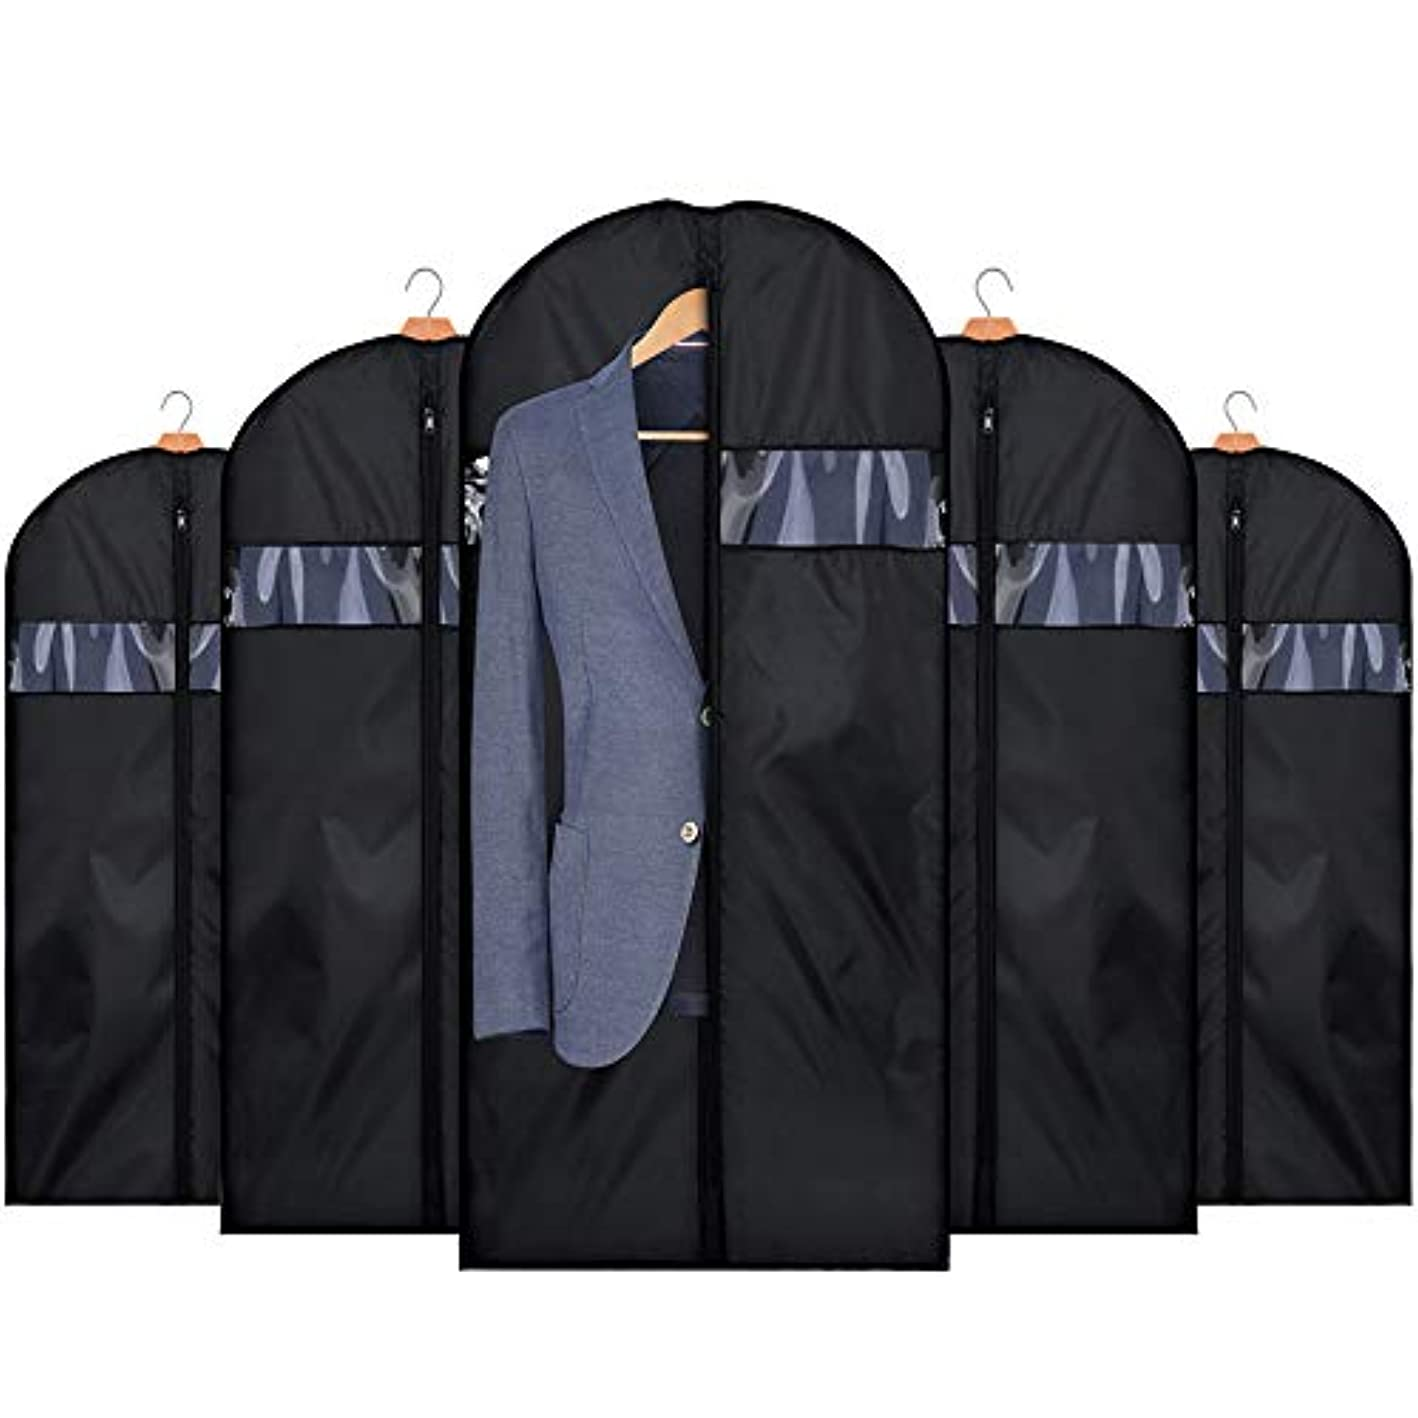 HOUSE DAY Garment Bags for Storage 5 Pack 42 inch Garment Bags for Travel Foldable Storage Bags Suit Covers for Closet,Washable Garment Suit Cover for Dresses,Suits,Coats